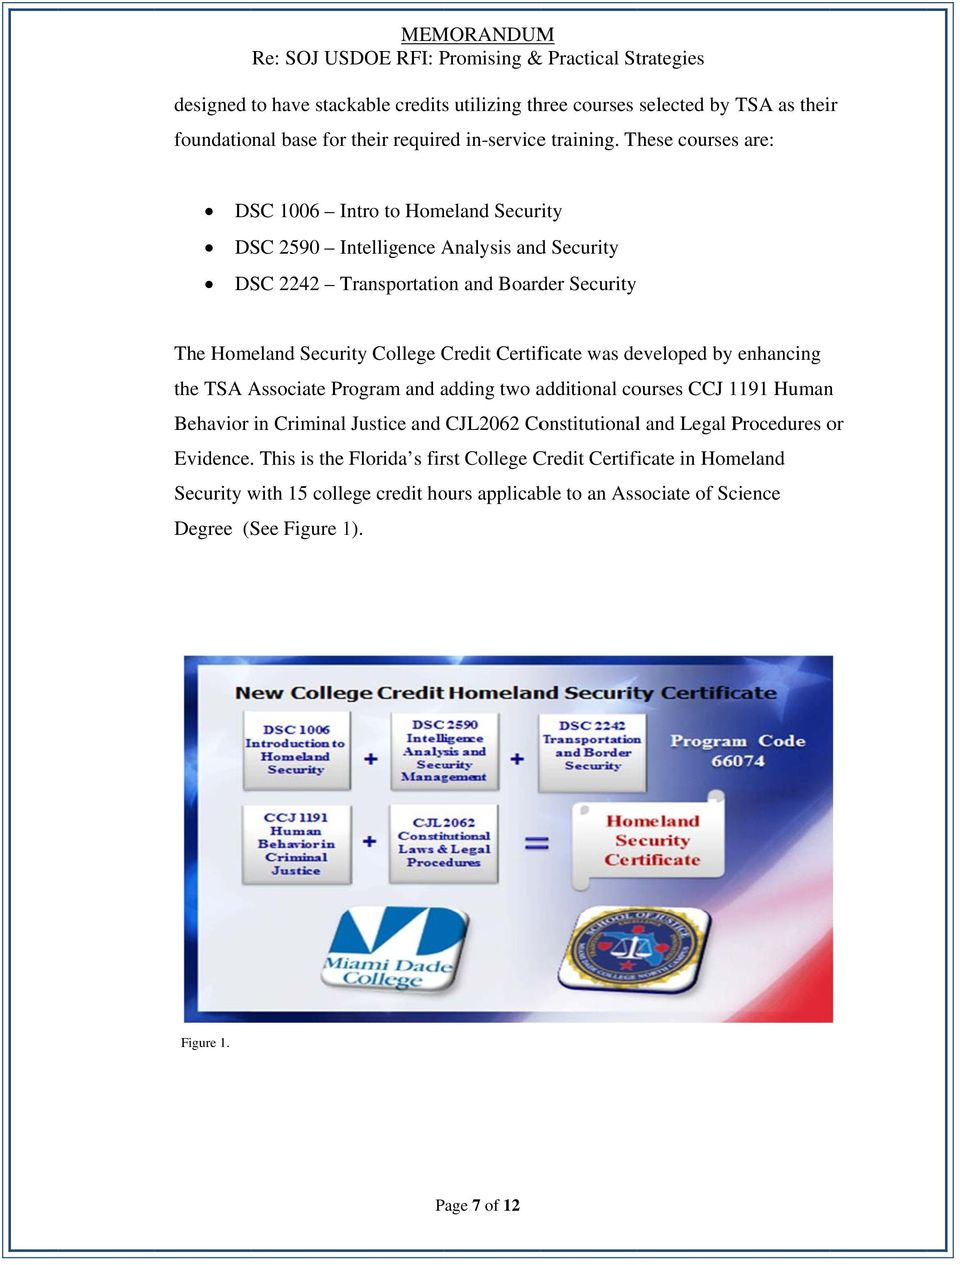 Credit Certificate was developed by enhancing the TSA Associate Program and adding two additional courses CCJ 1191 Human Behavior in Criminal Justice and CJL2062 Constitutionall and